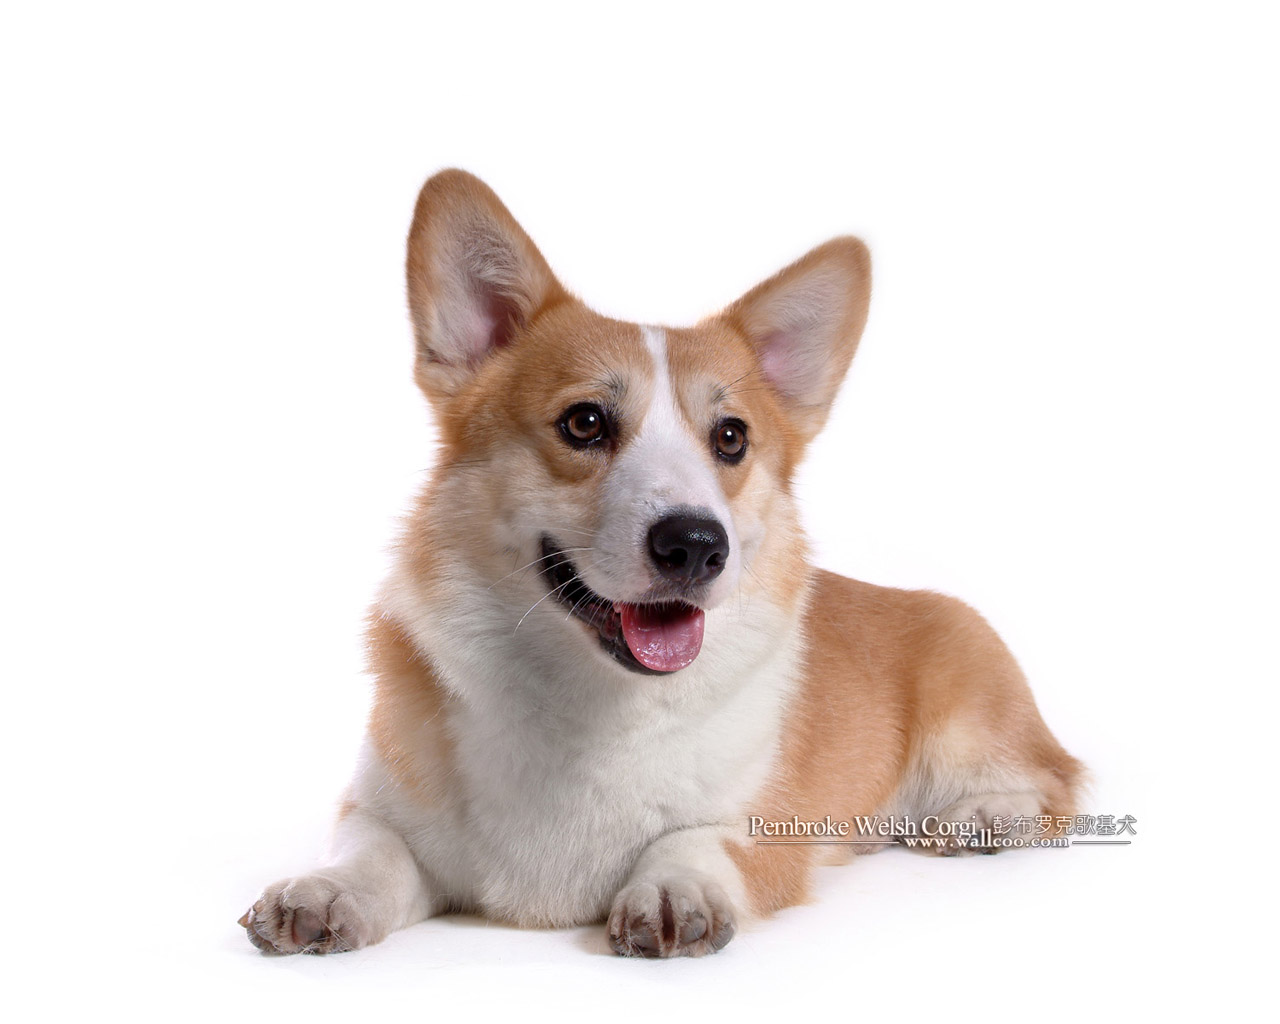 Can Corgis Be Service Dogs